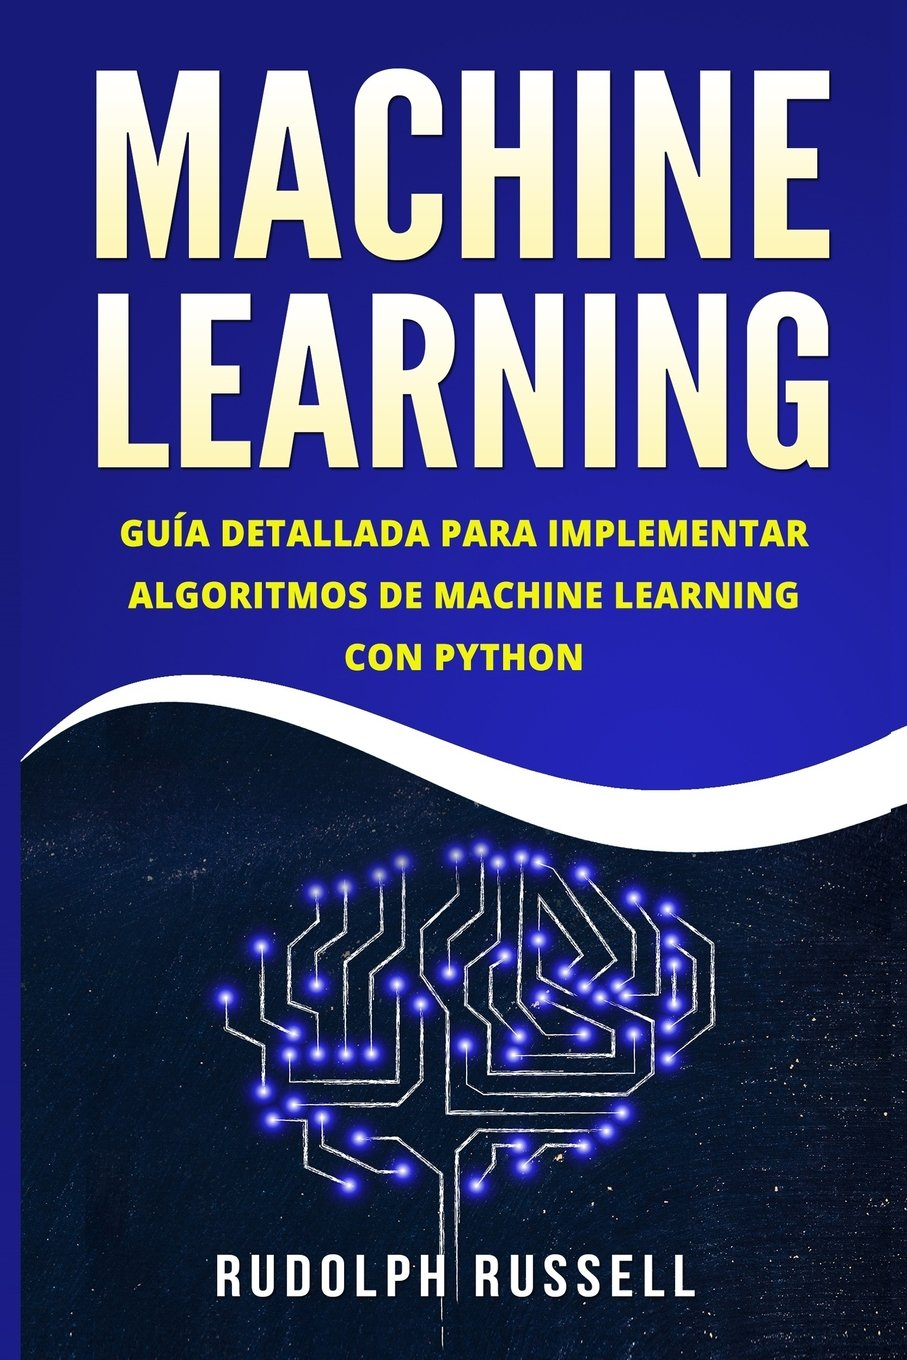 MACHINE LEARNING: Guia Paso a Paso Para Implementar Algoritmos De Machine Learning Con Python (Machine Learning en Espanol/ Machine Learning in Spanish) Tapa blanda – 8 jun 2018 Rudolph Russell 1720933685